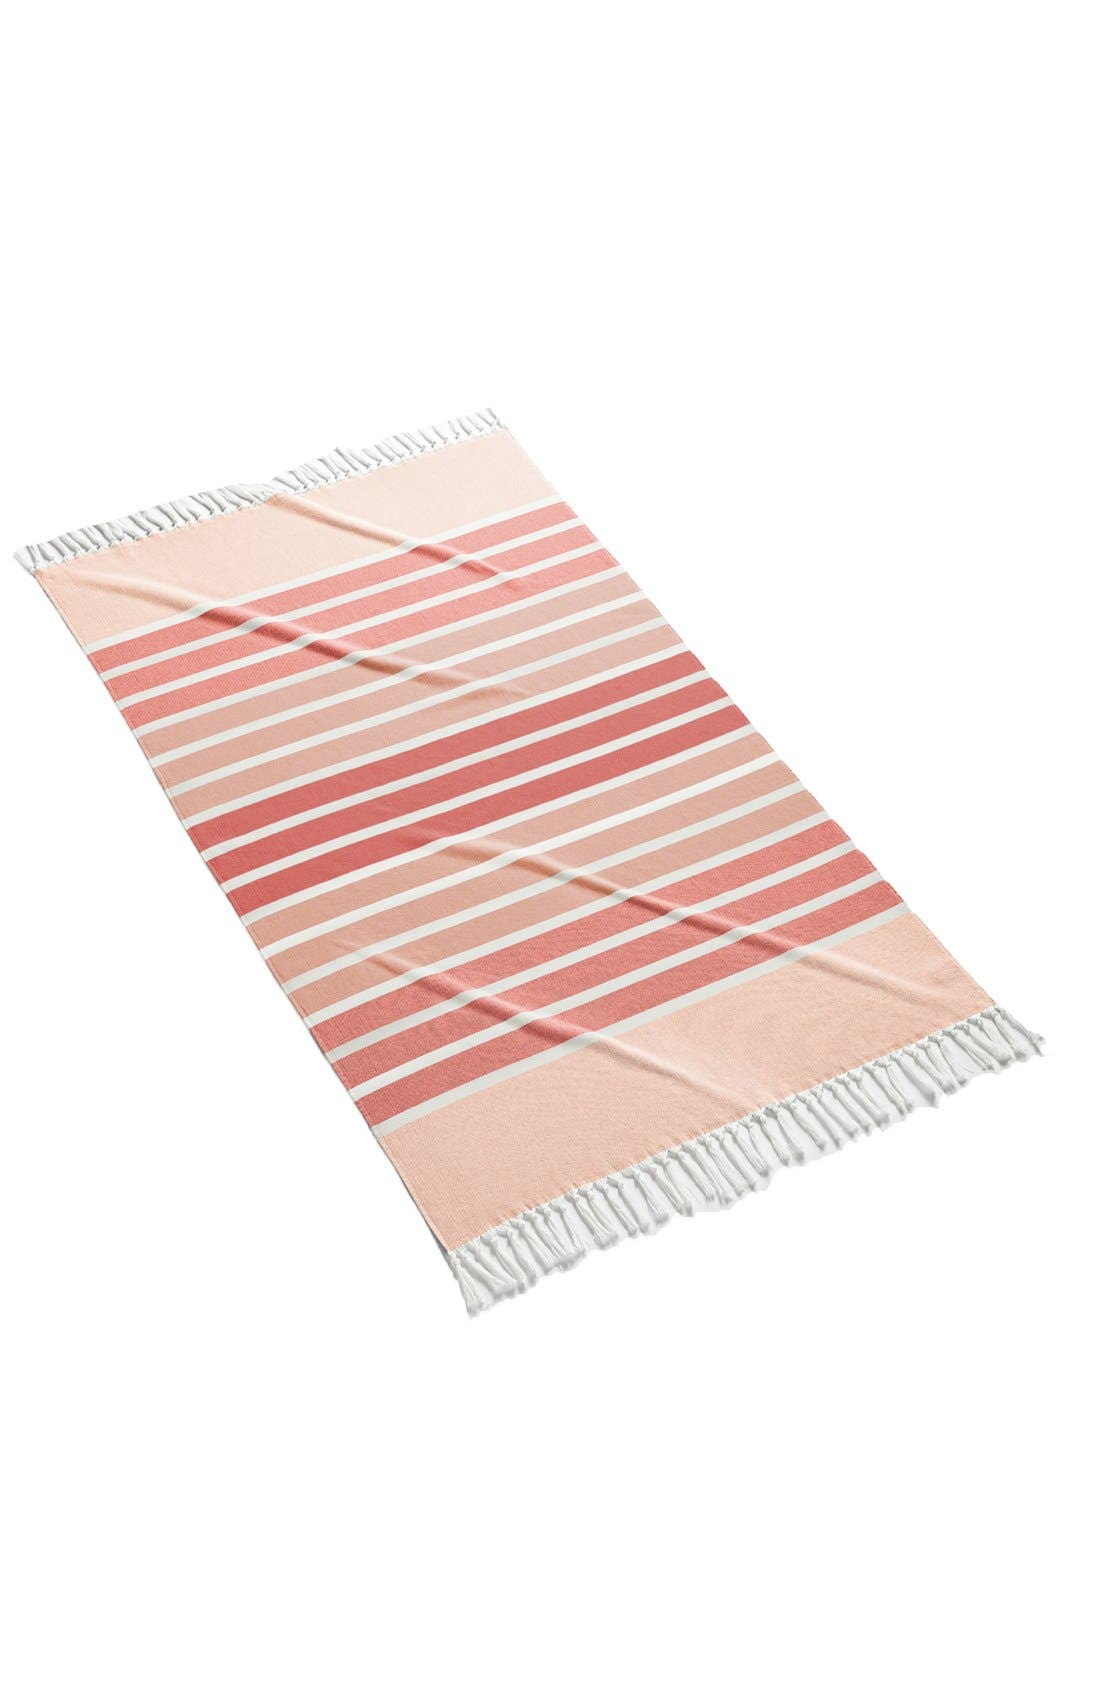 'Bodrum' Cotton Beach Towel,                             Main thumbnail 1, color,                             CORAL